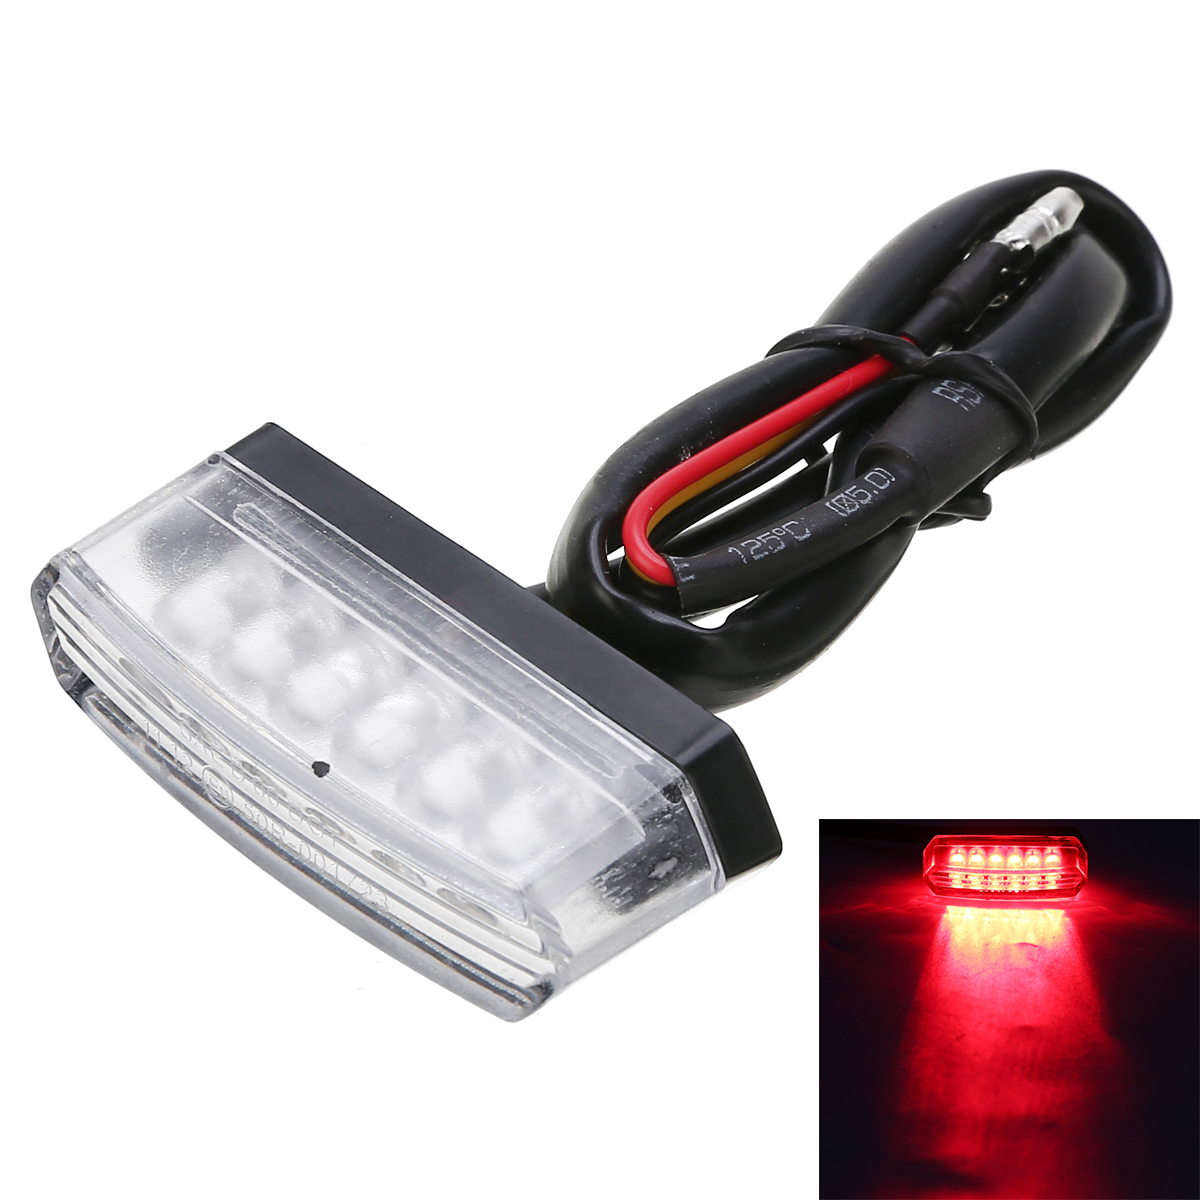 New Arrival 1pc Red Mini Motorcycle Light 6LED Rear Number License Plate Tail Light Lamp Clear Lens